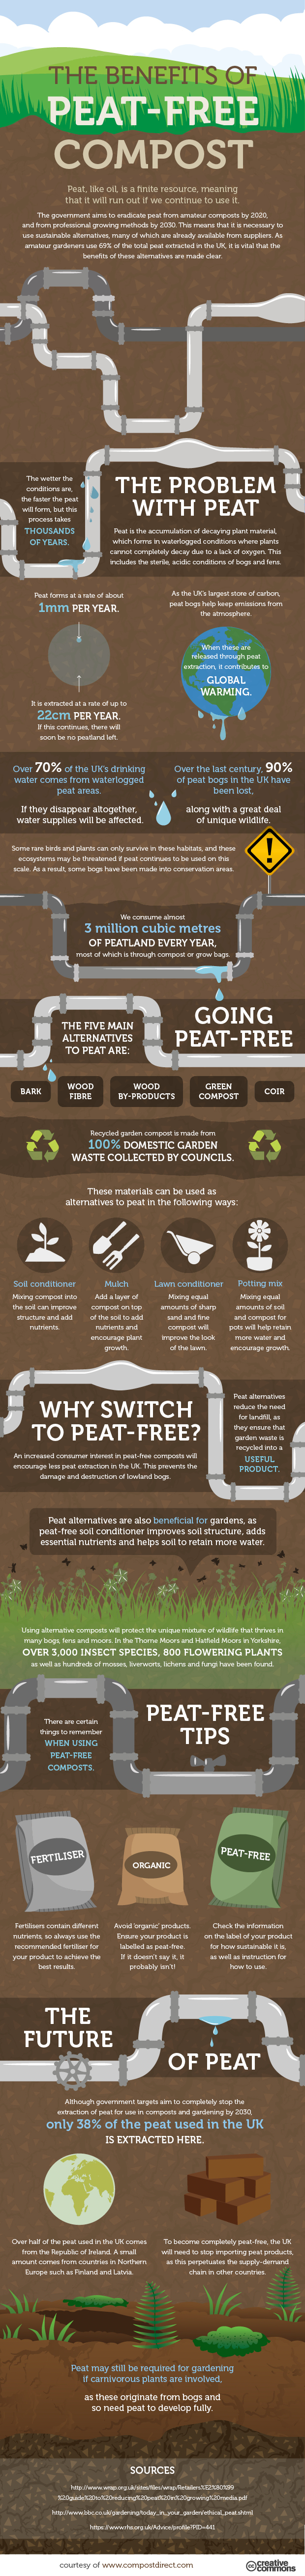 The benefits of peat-free compost -1